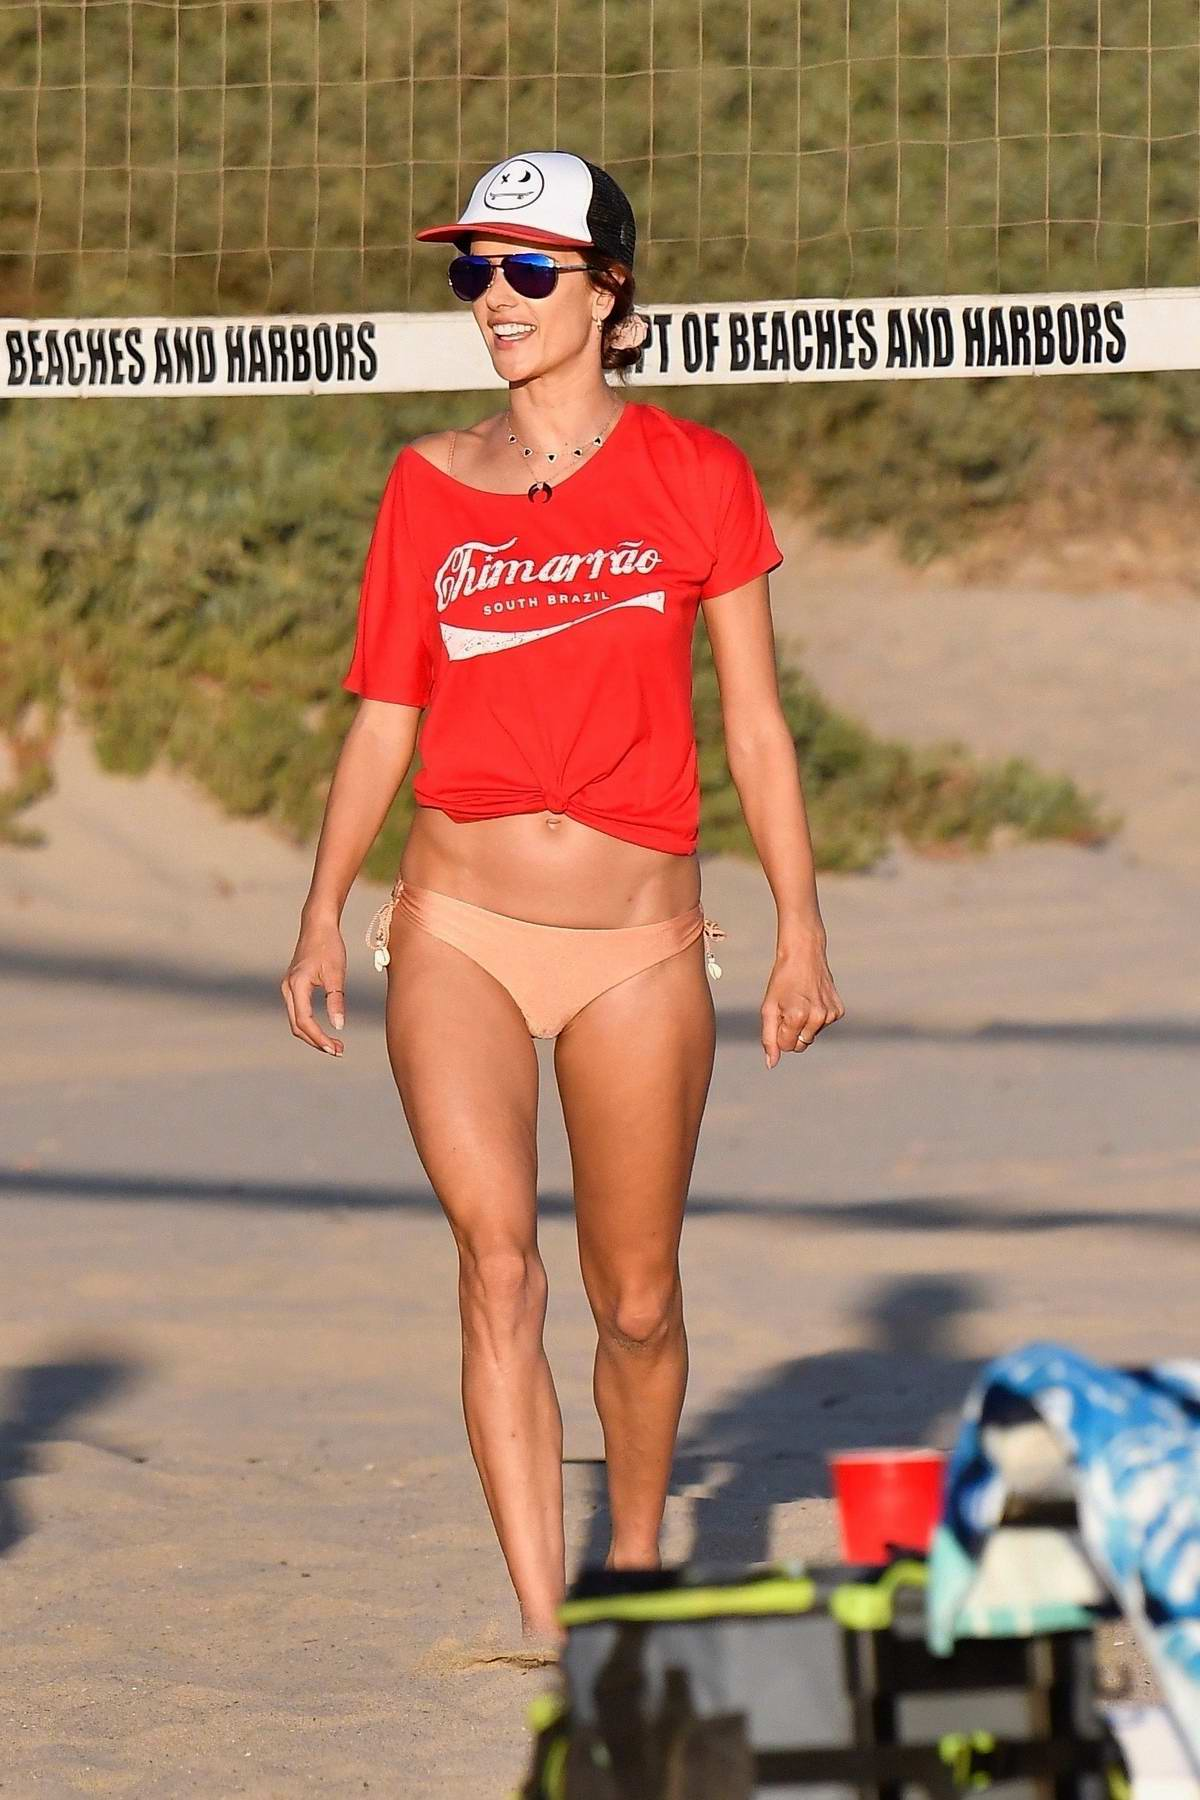 Alessandra Ambrosio wears a red tee and peach bikini bottoms while playing beach volleyball with friends in Santa Monica, California